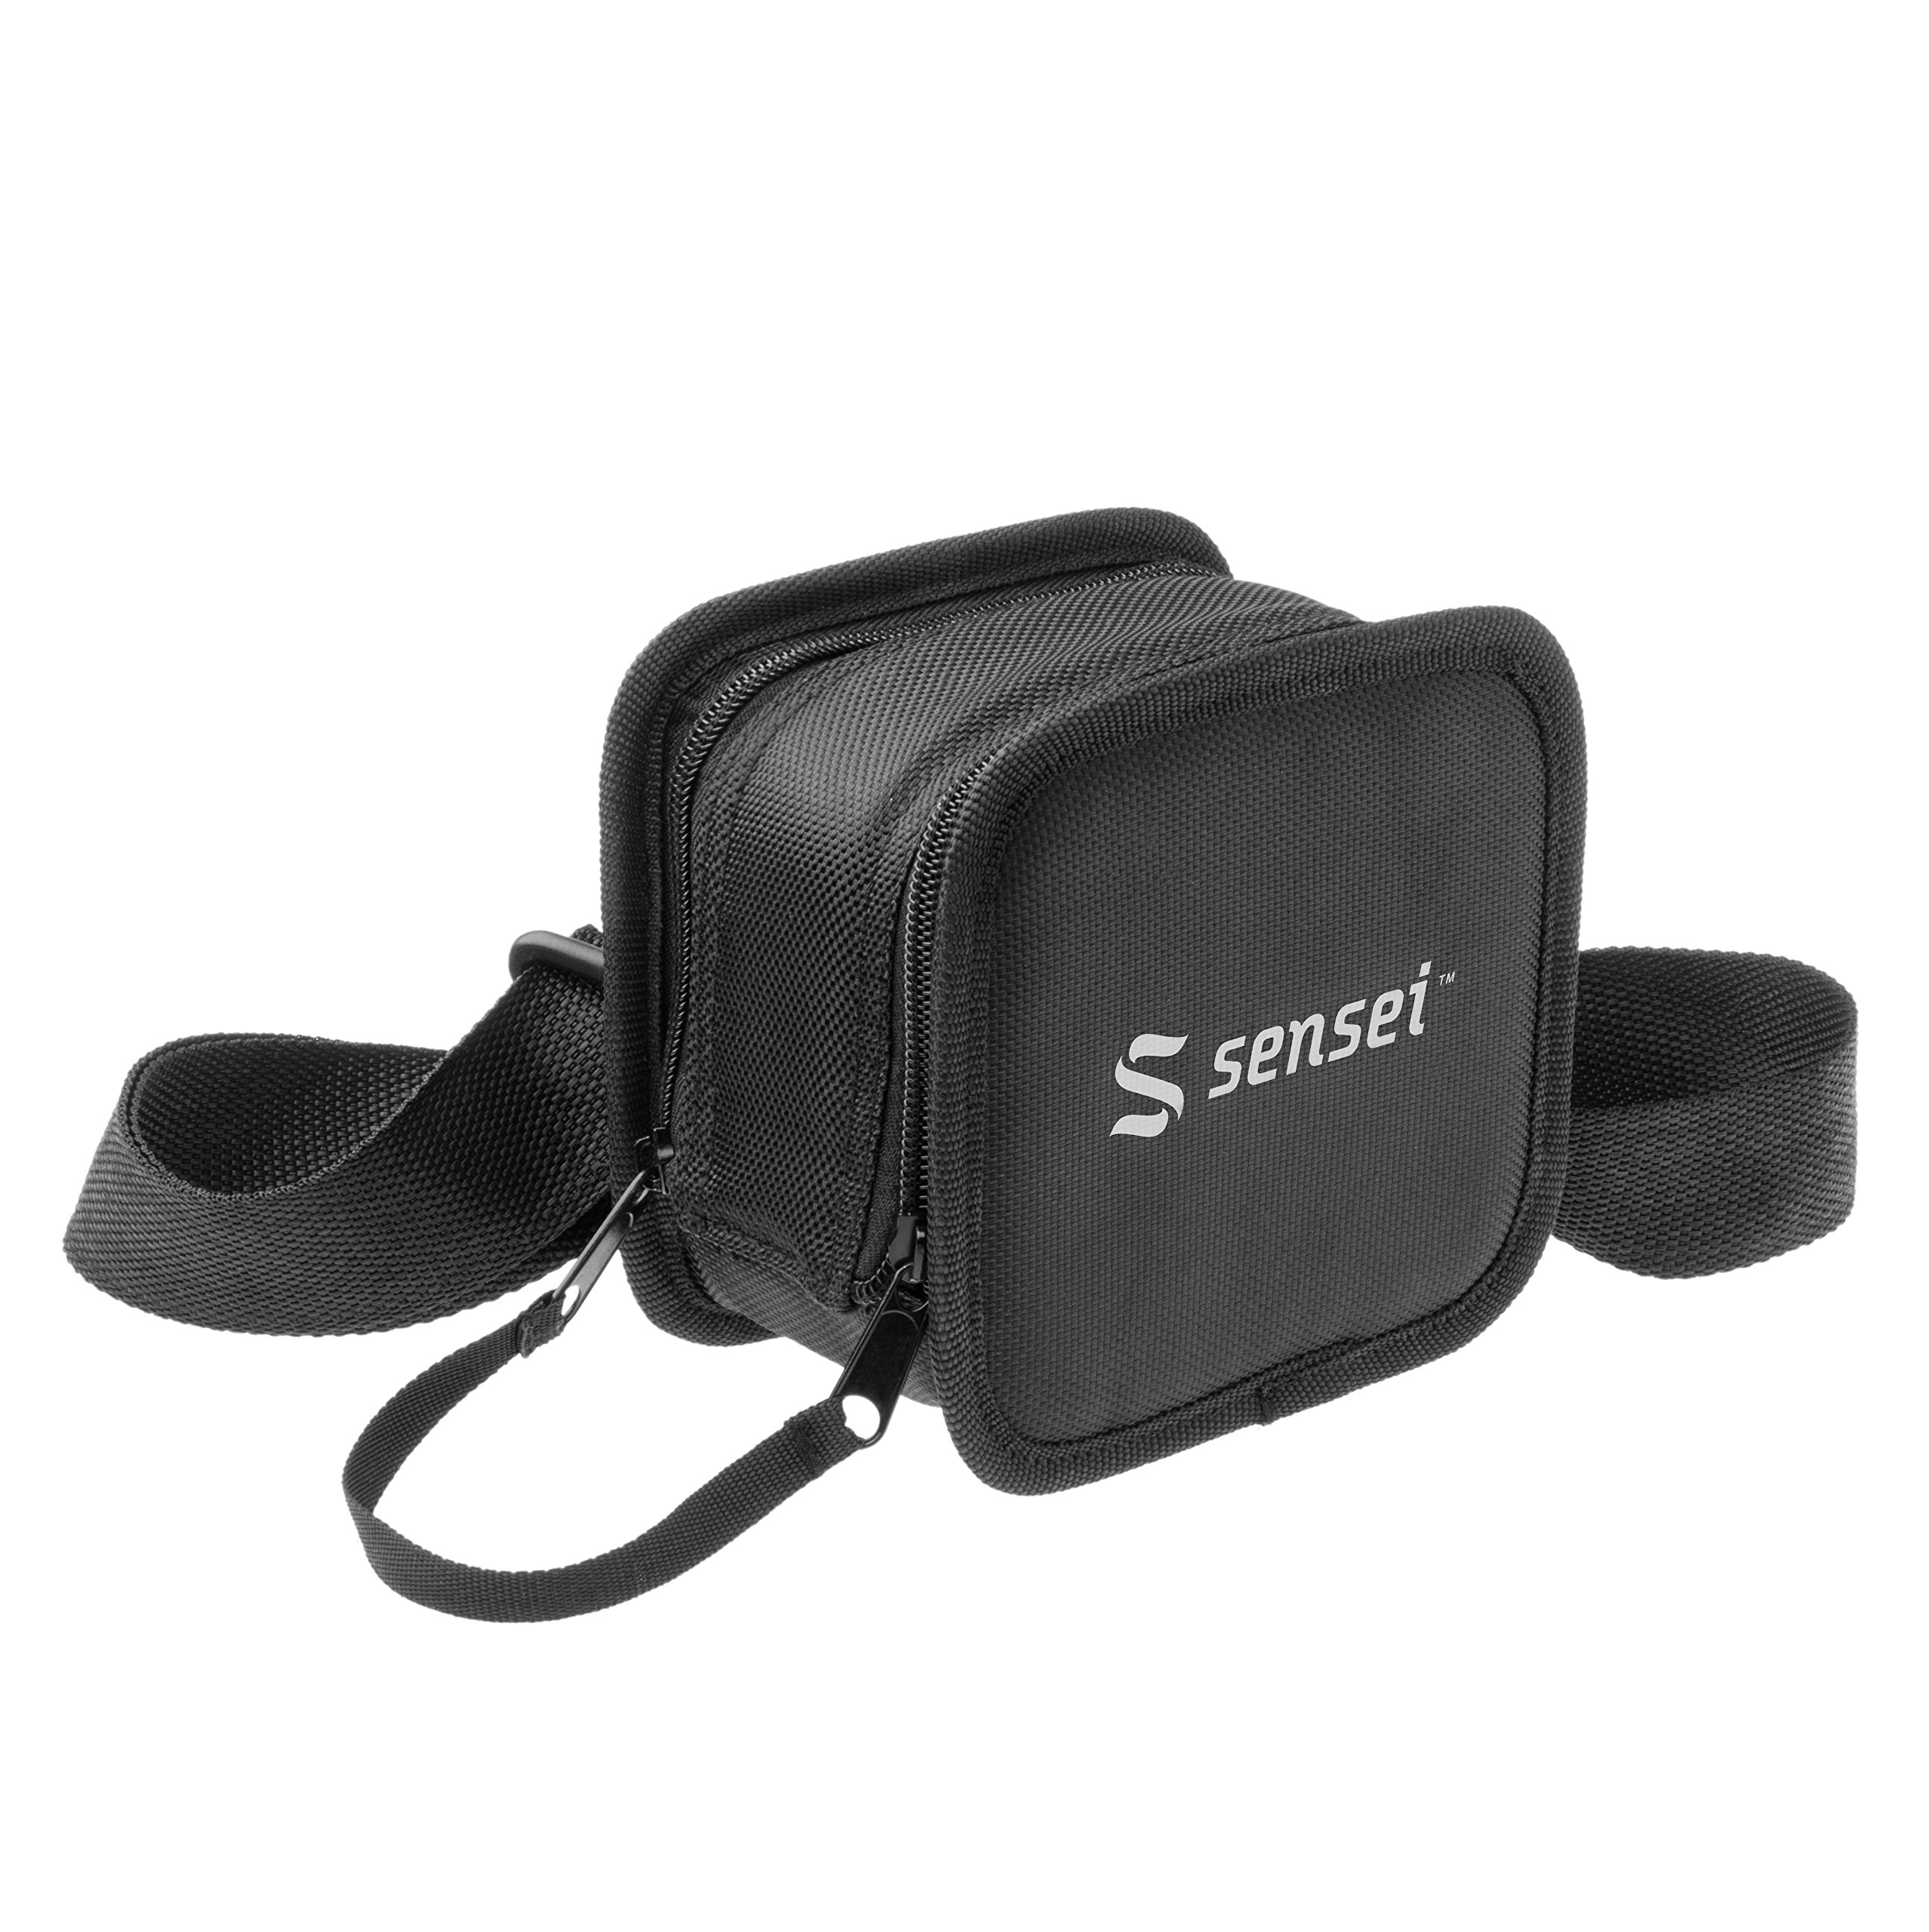 Sensei FP-8P95B Filter Pouch for Filters up to 95mm or 4 x 4